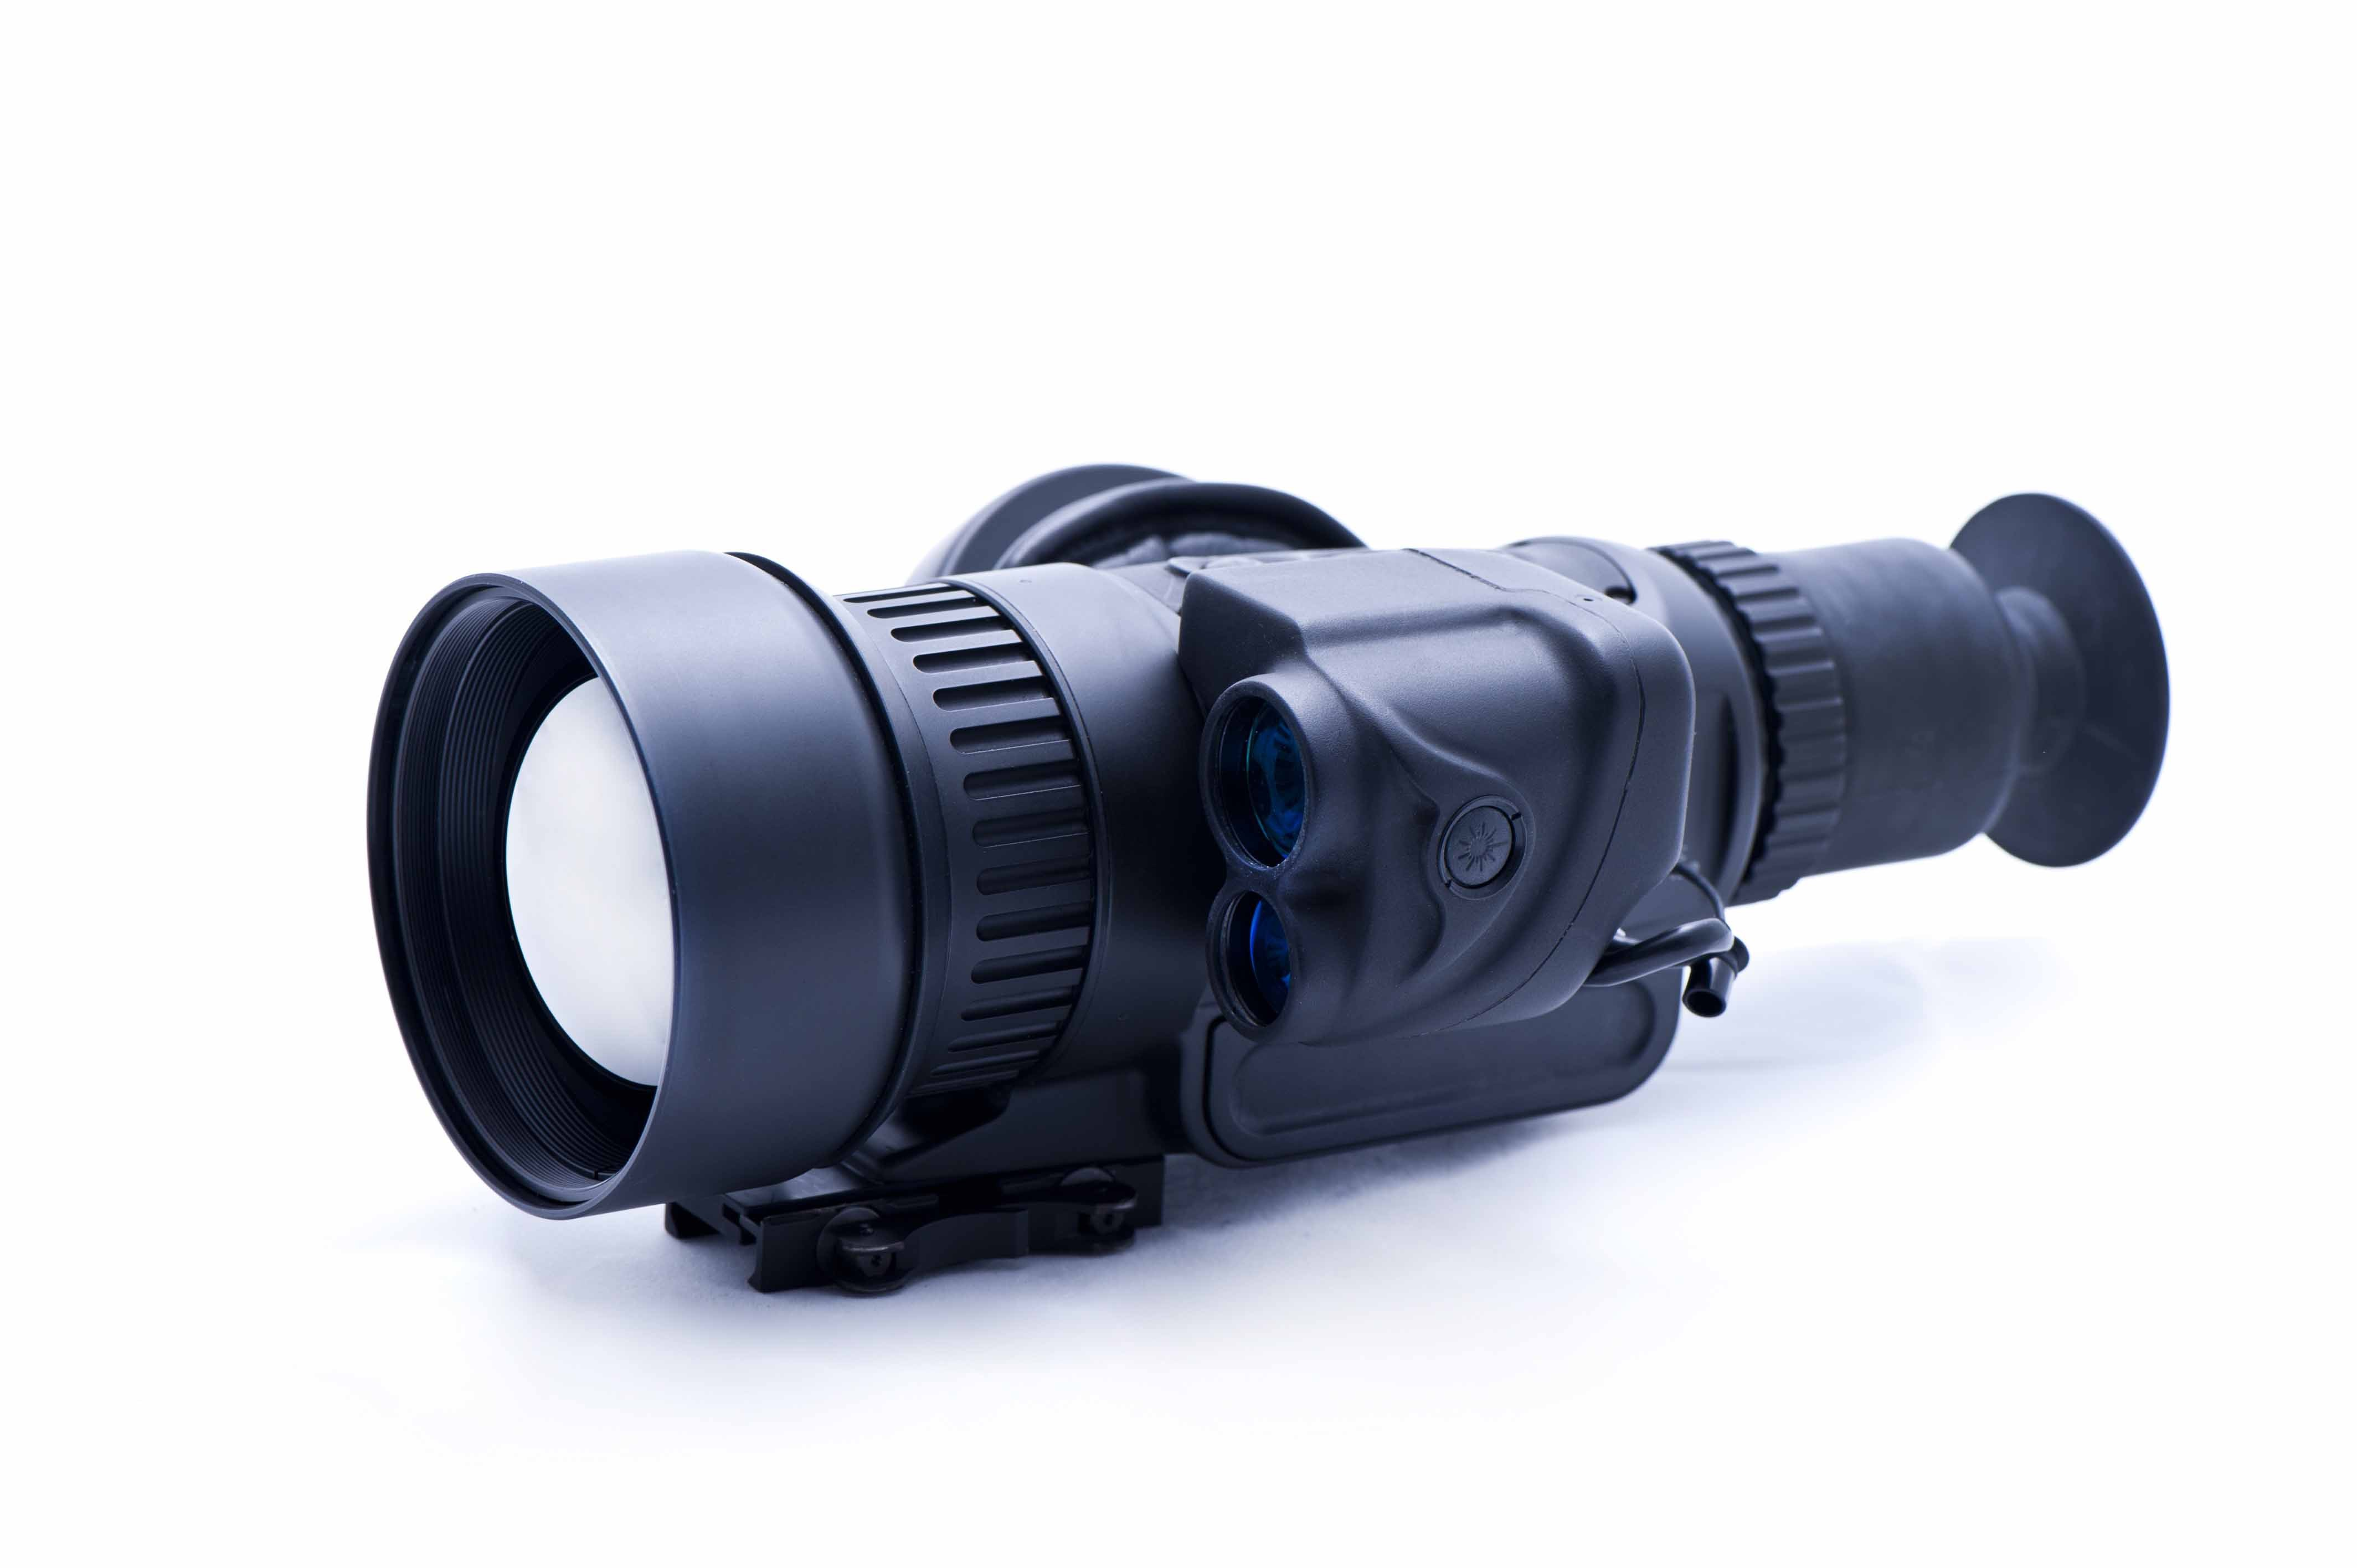 Optix-Thermal-Vision-Imaging-Sights-IdentifieR-termovizionen-mernik